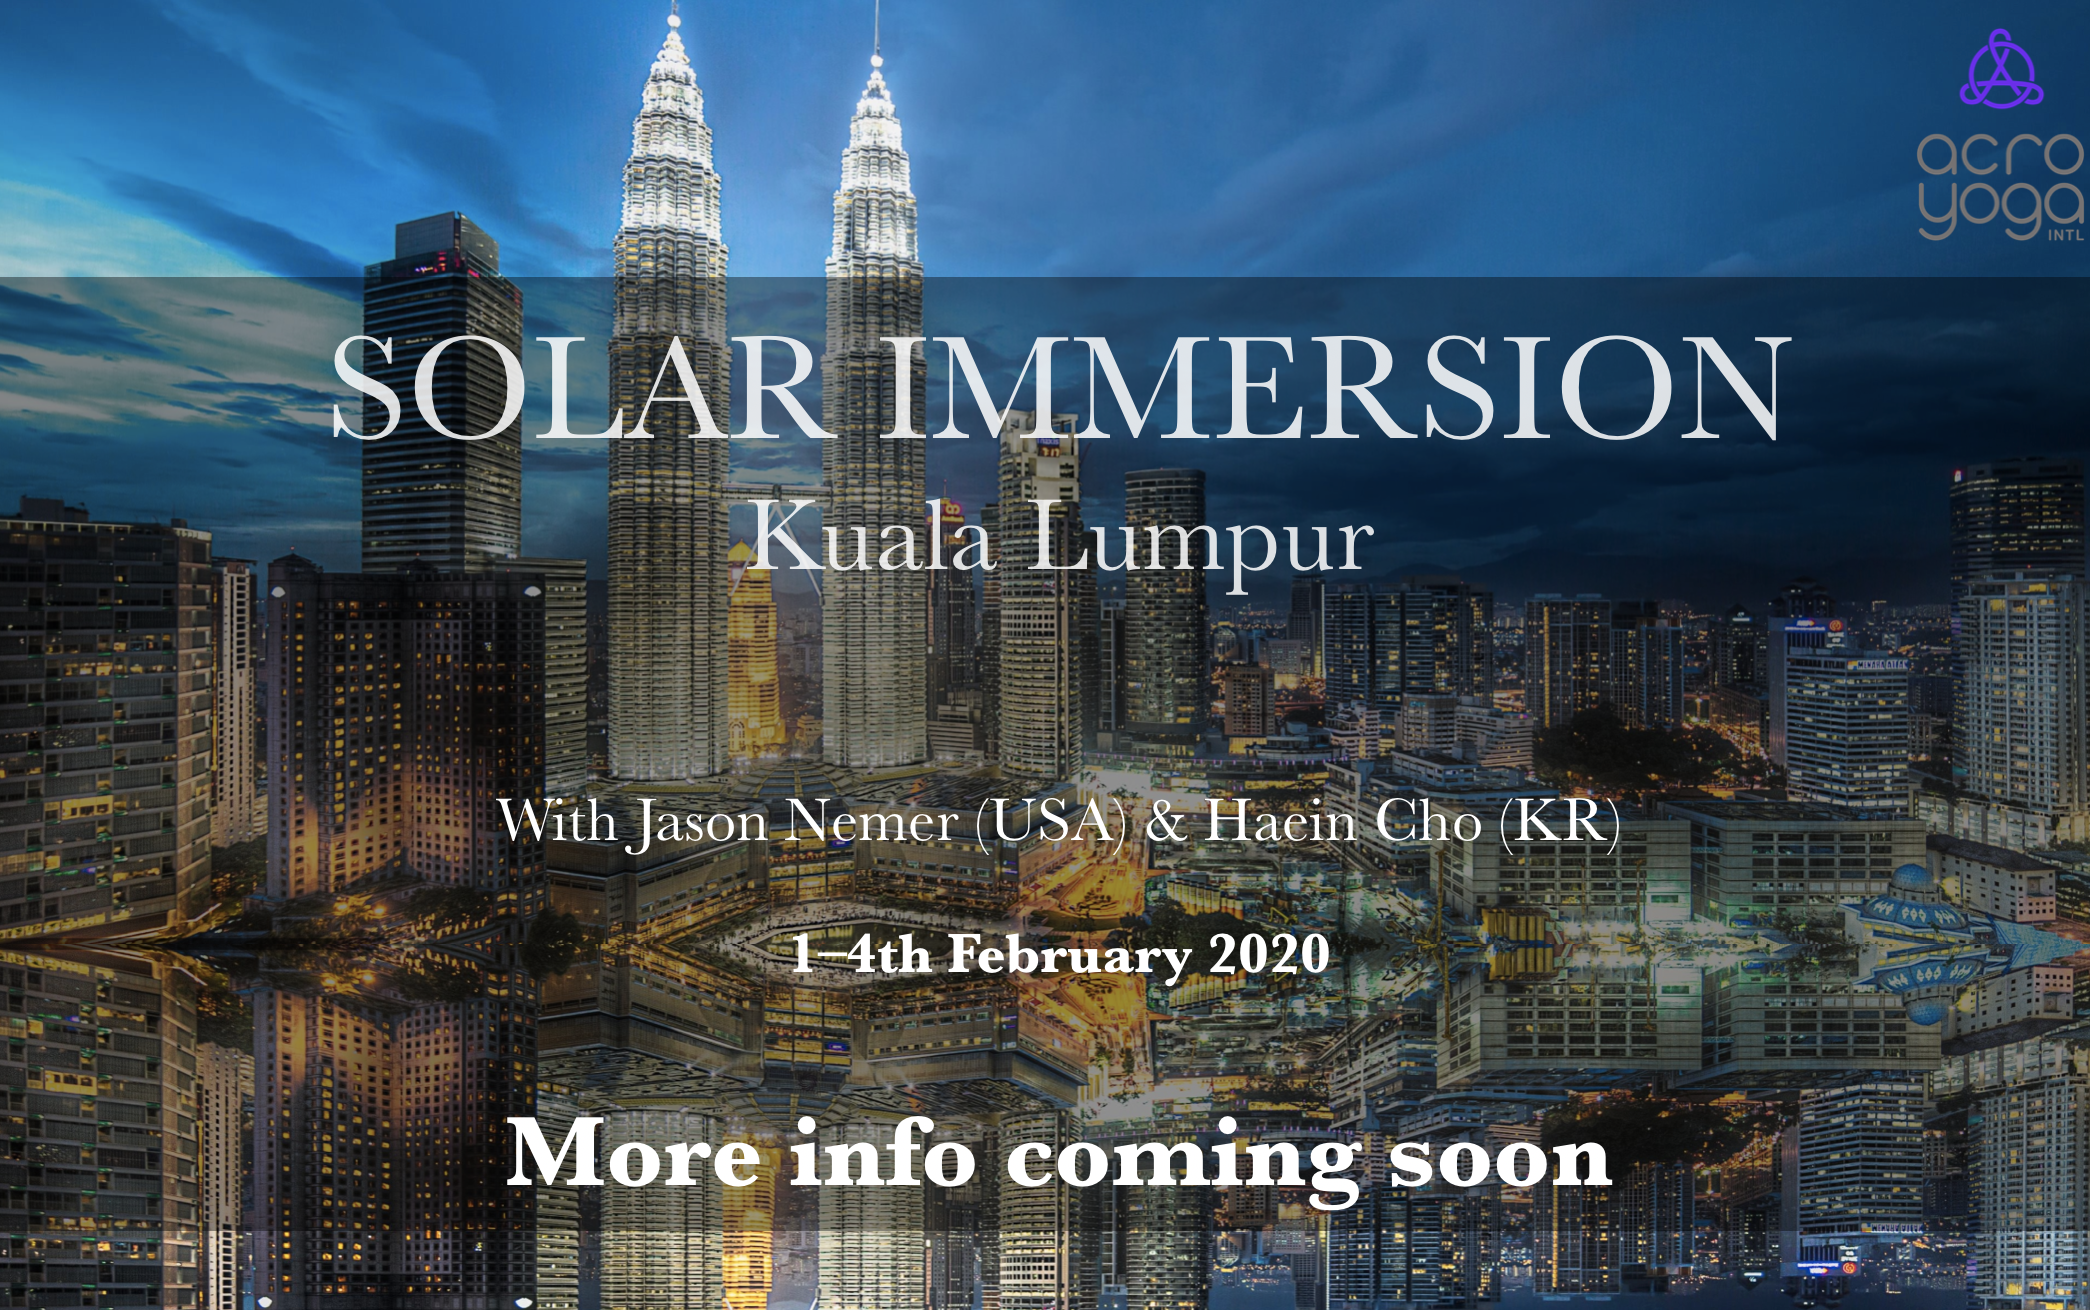 ASIA Acroyoga Solar Immersion 1-4th Feb